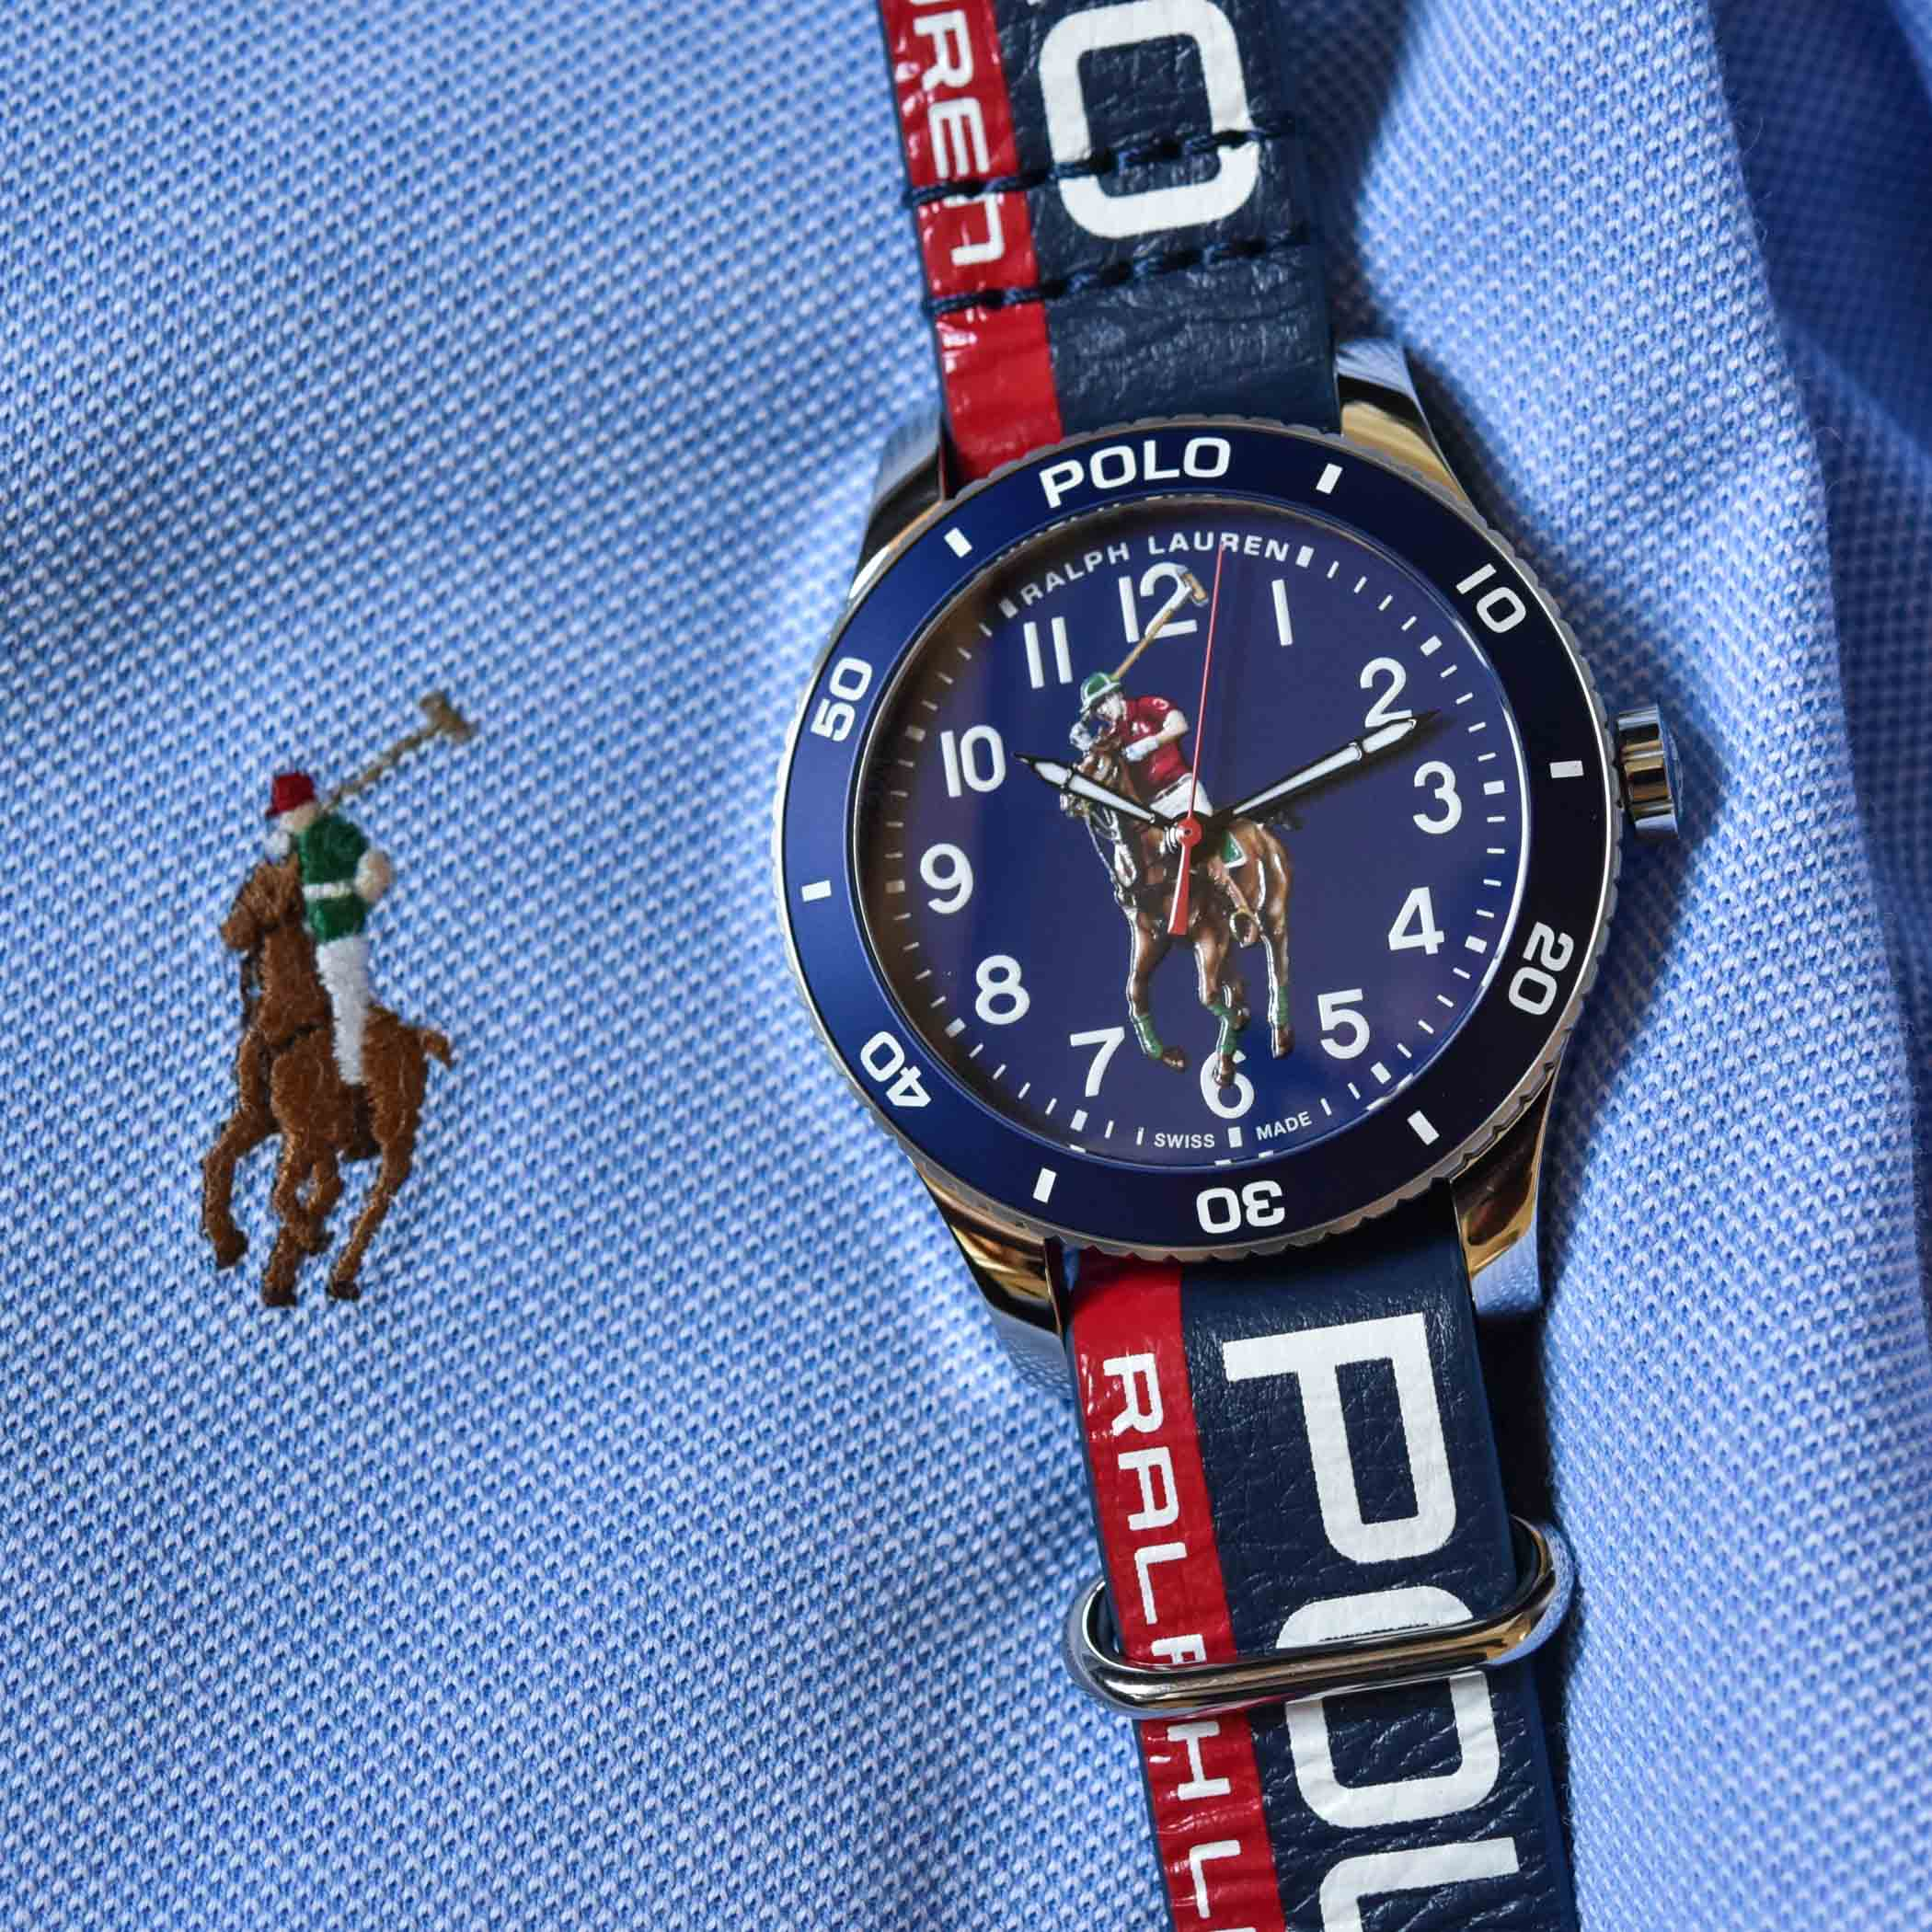 2020 Ralph Lauren Polo Watch Collection